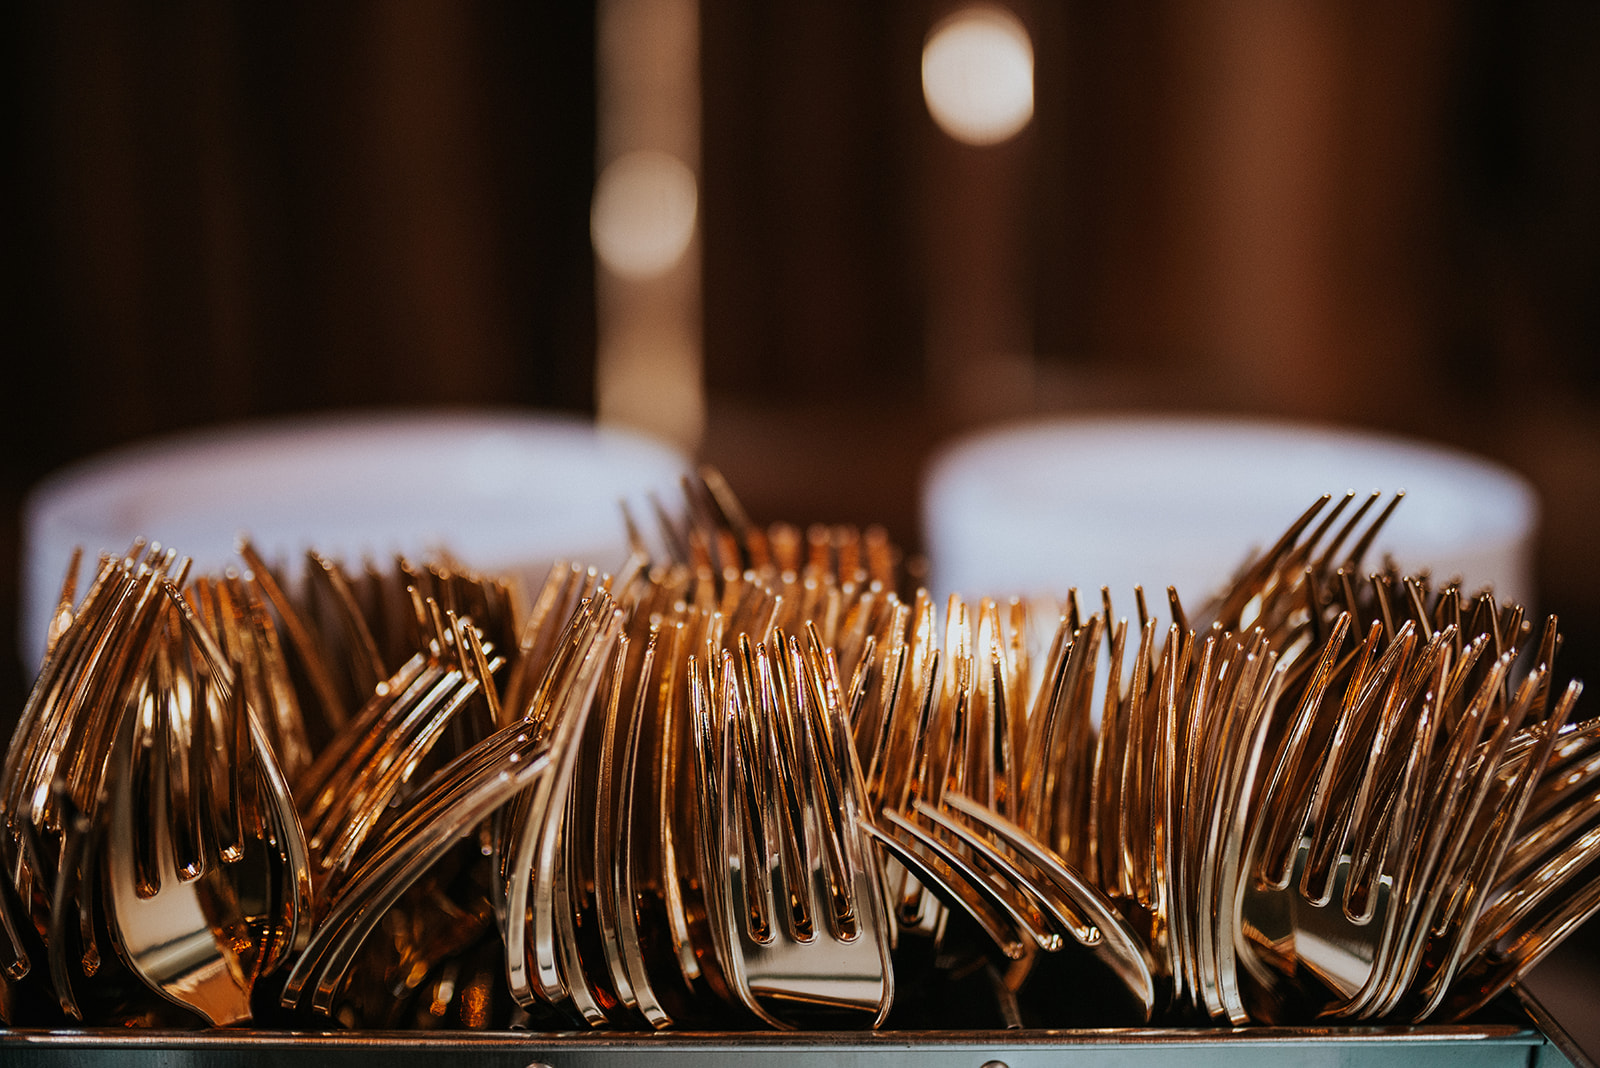 overthevineswisconsinwedding_1054.jpg